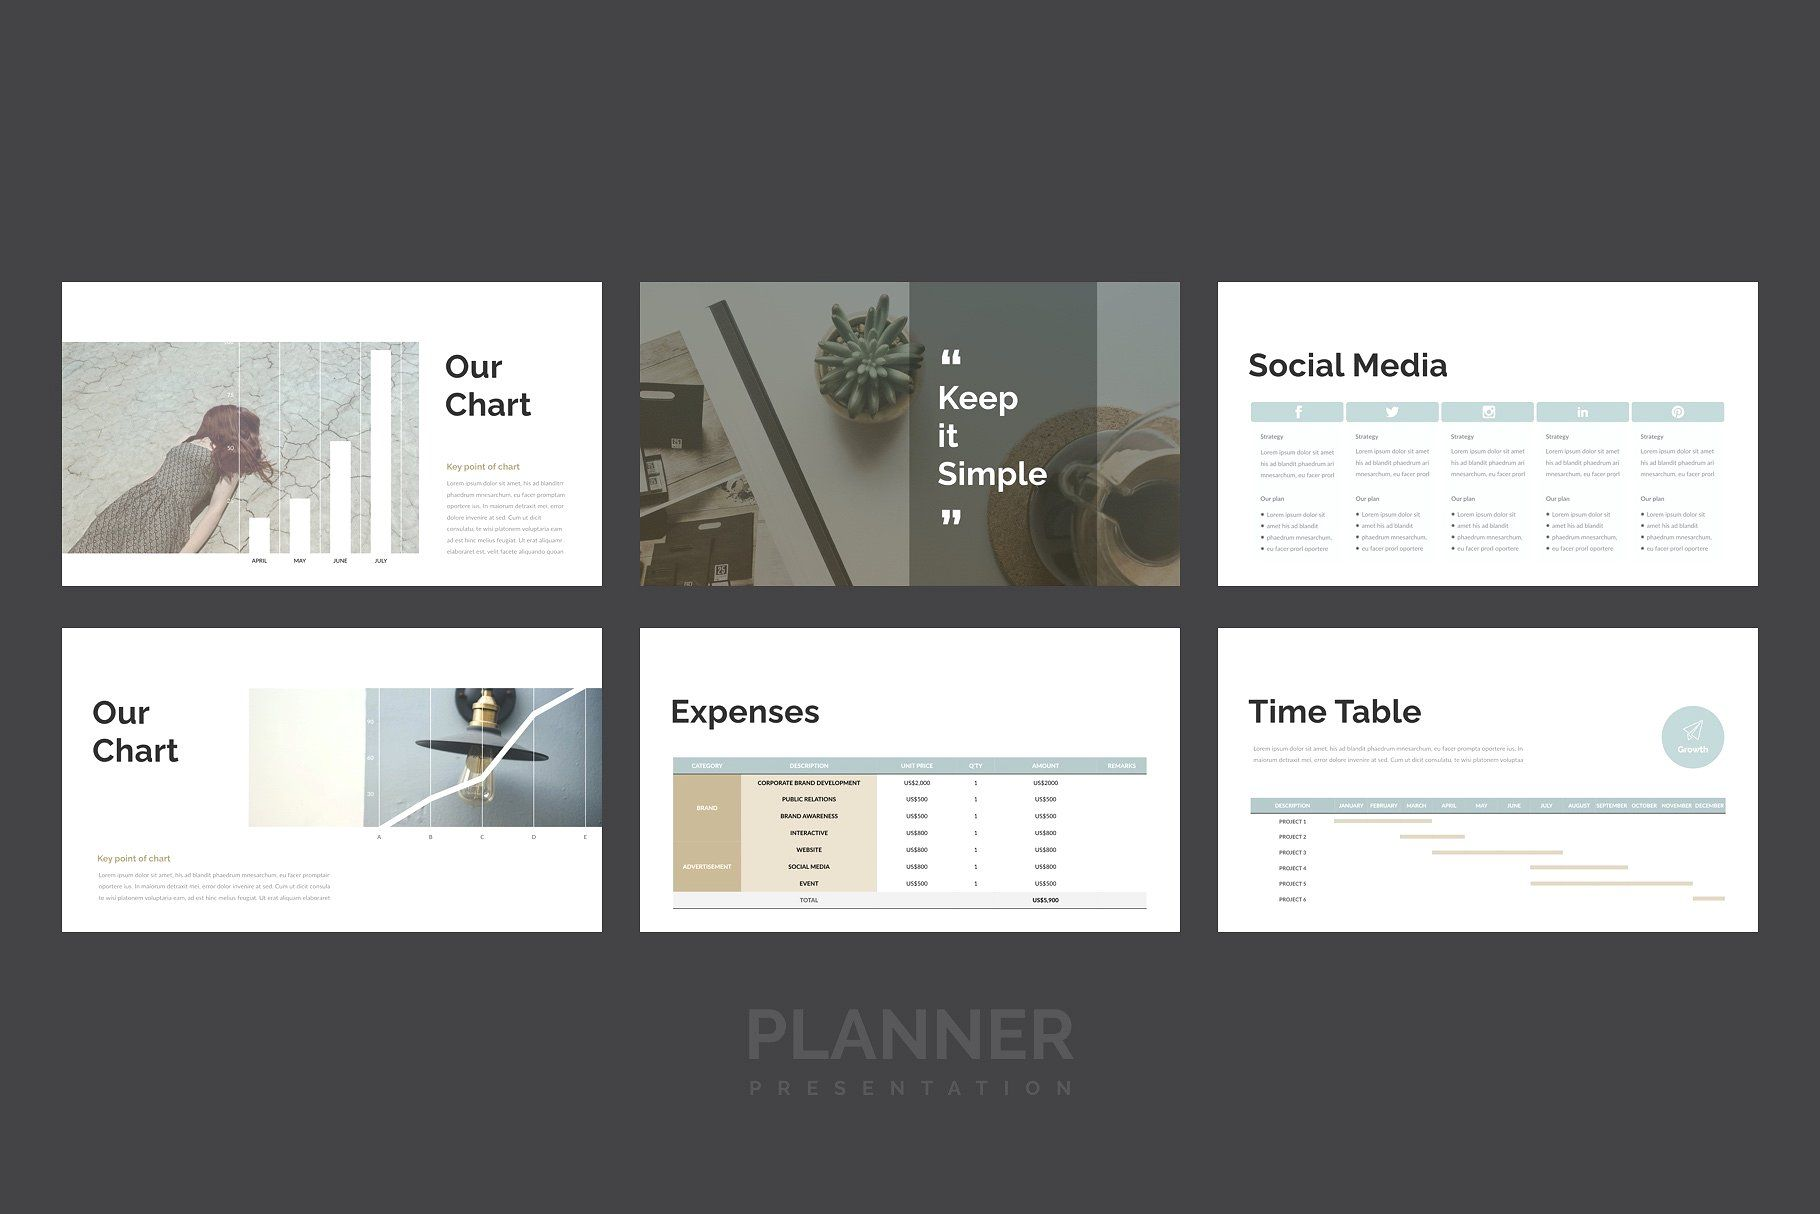 Planner PowerPoint Template by Simple P. on